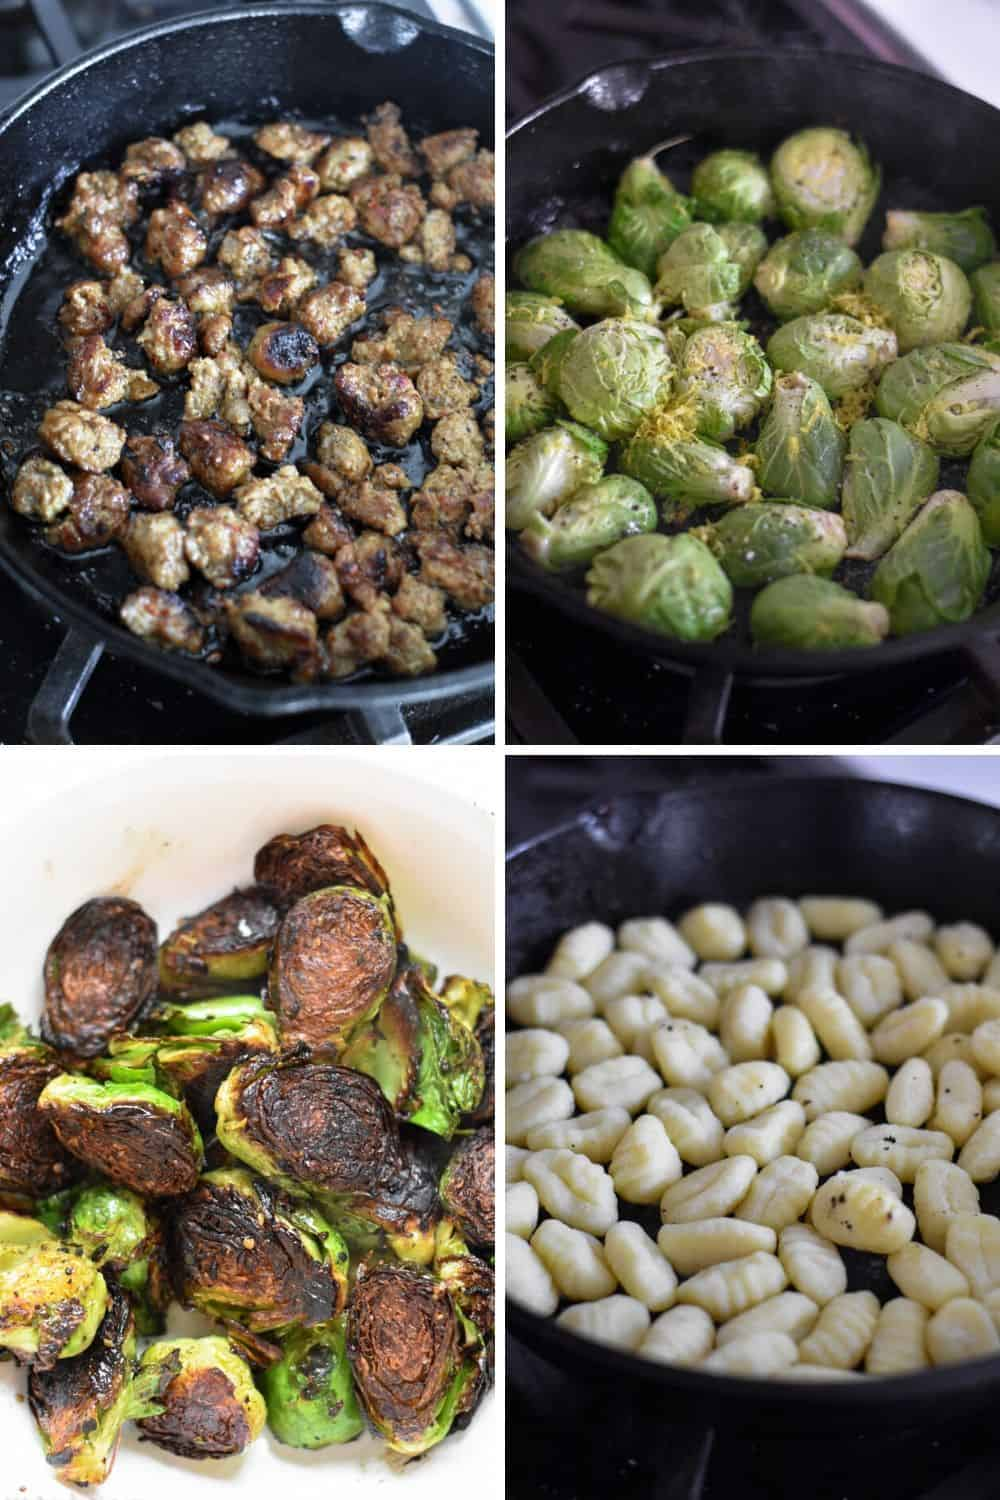 Four photo collage showing the process of cooking Italian sausage, brussels sprouts and gnocchi